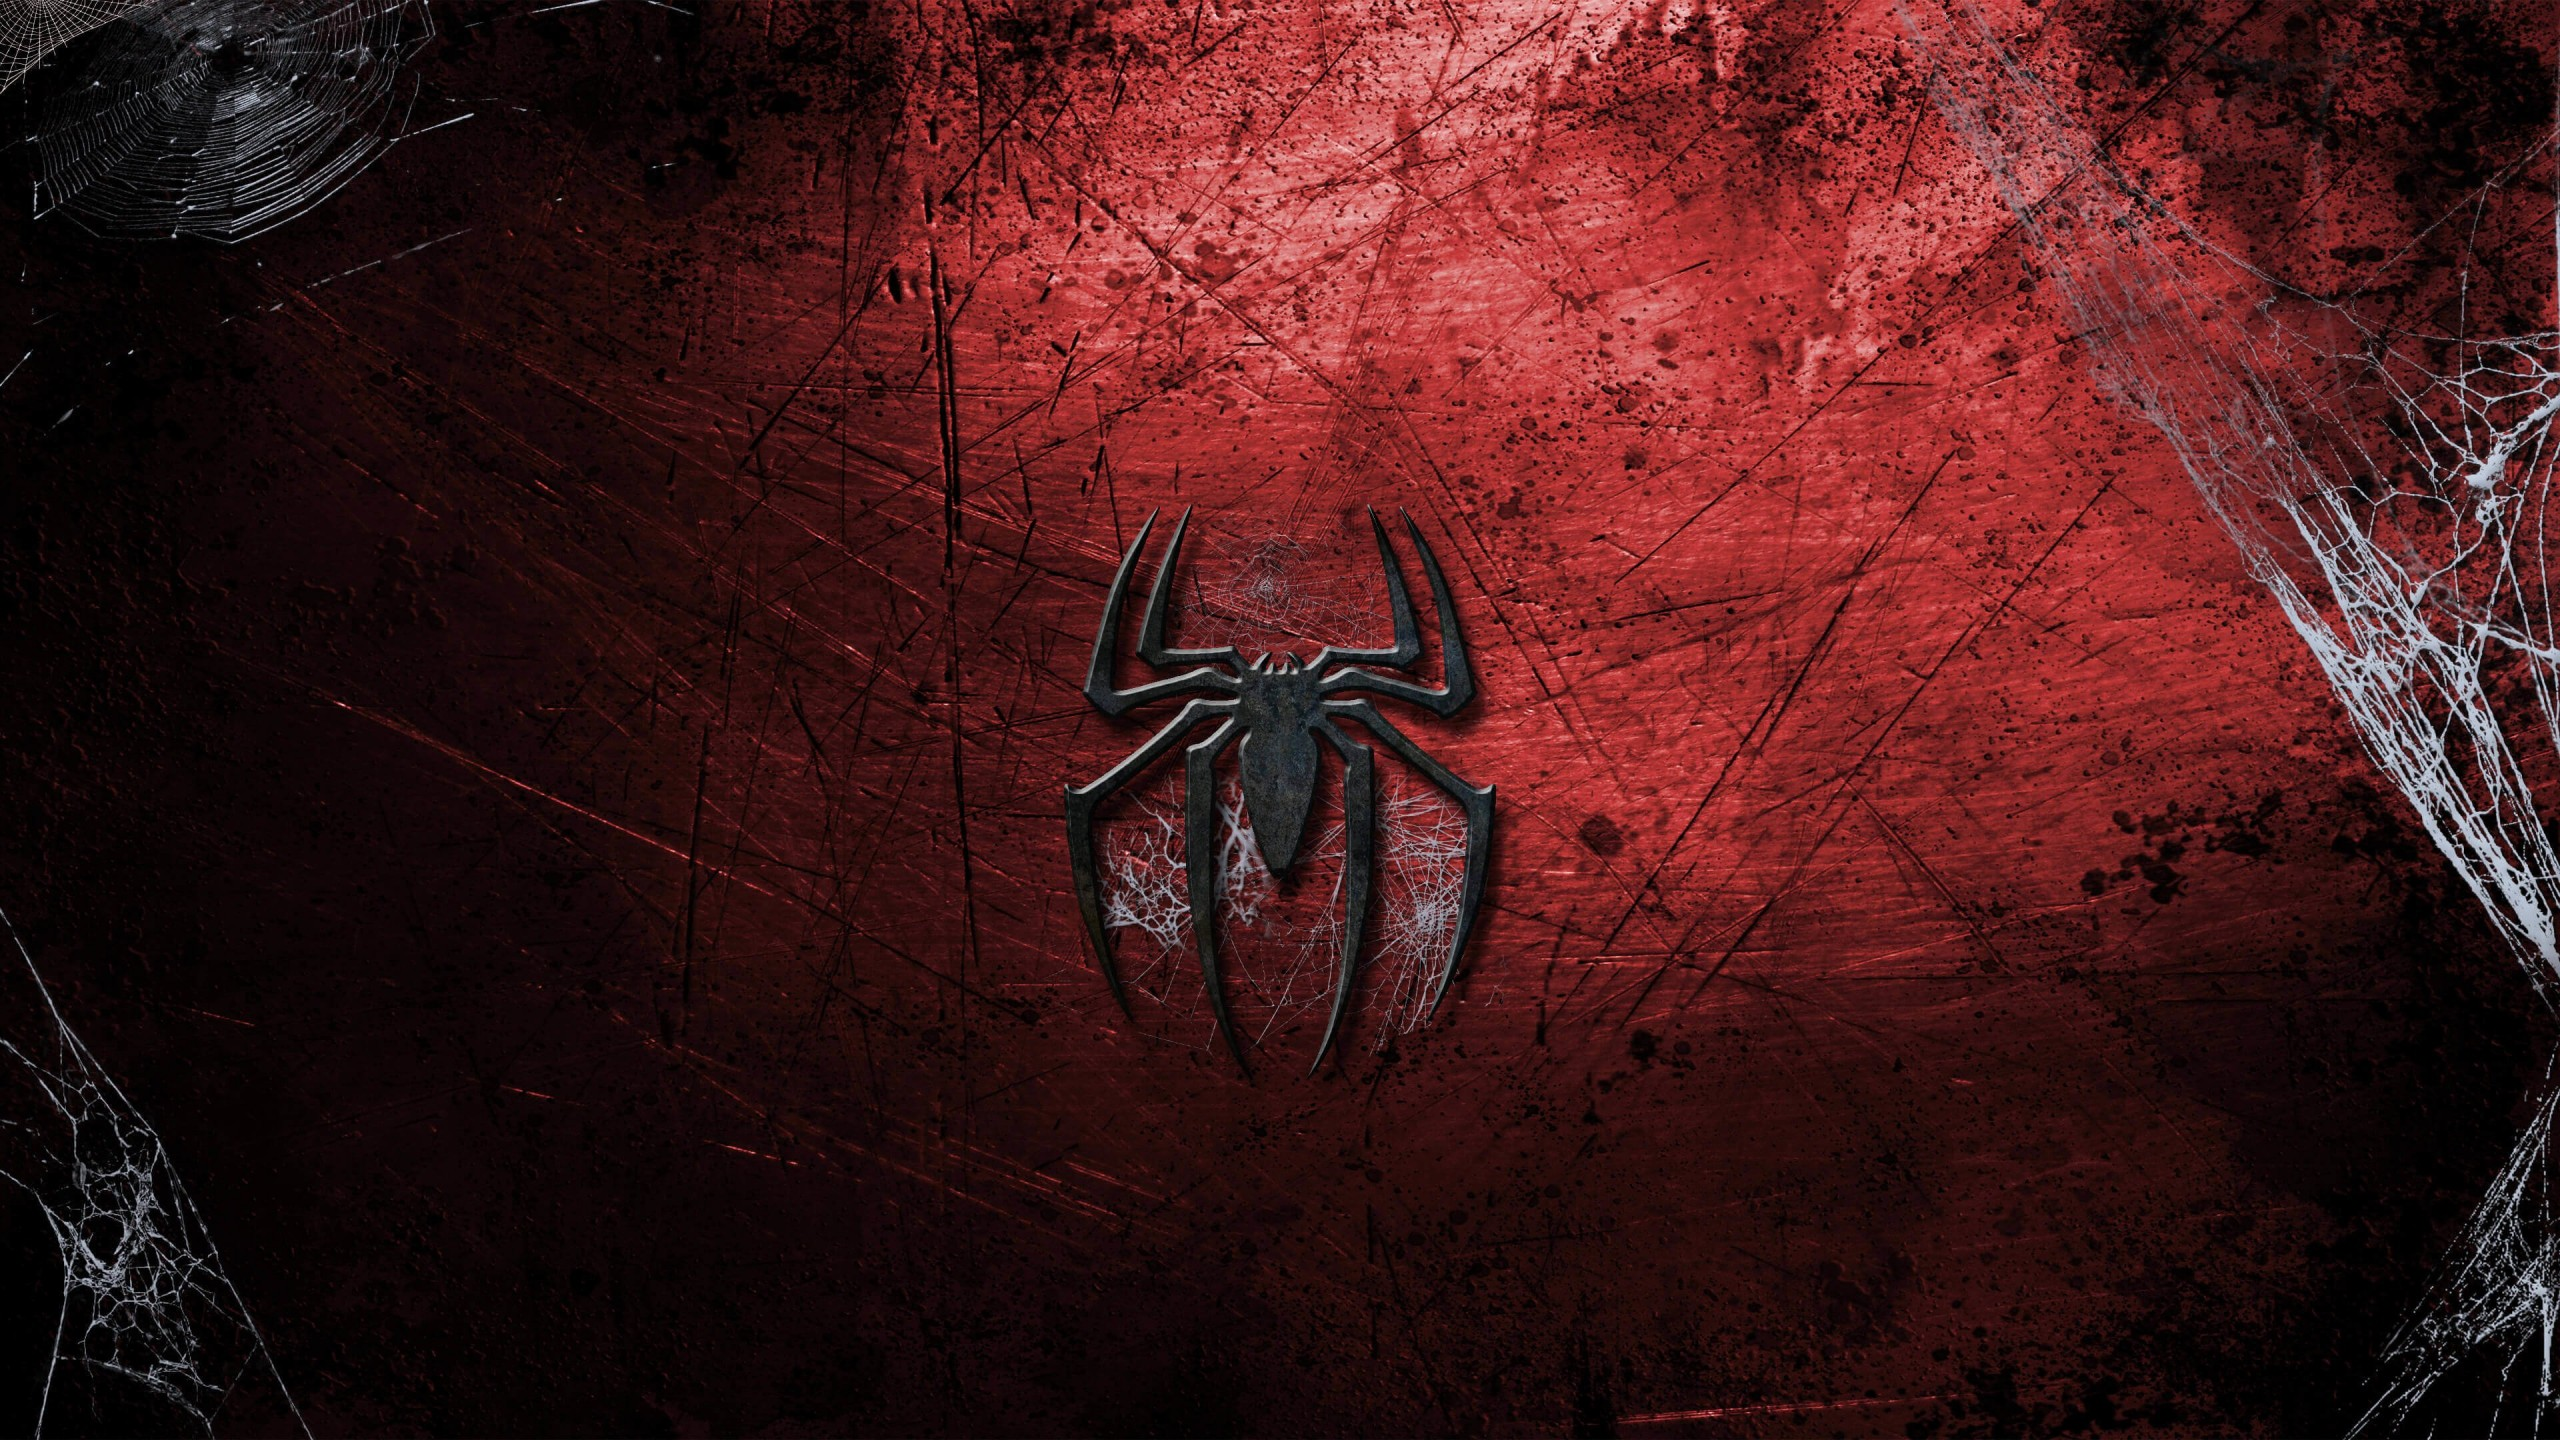 Grungy Spider-Man Logo Wallpaper for Desktop 2560x1440